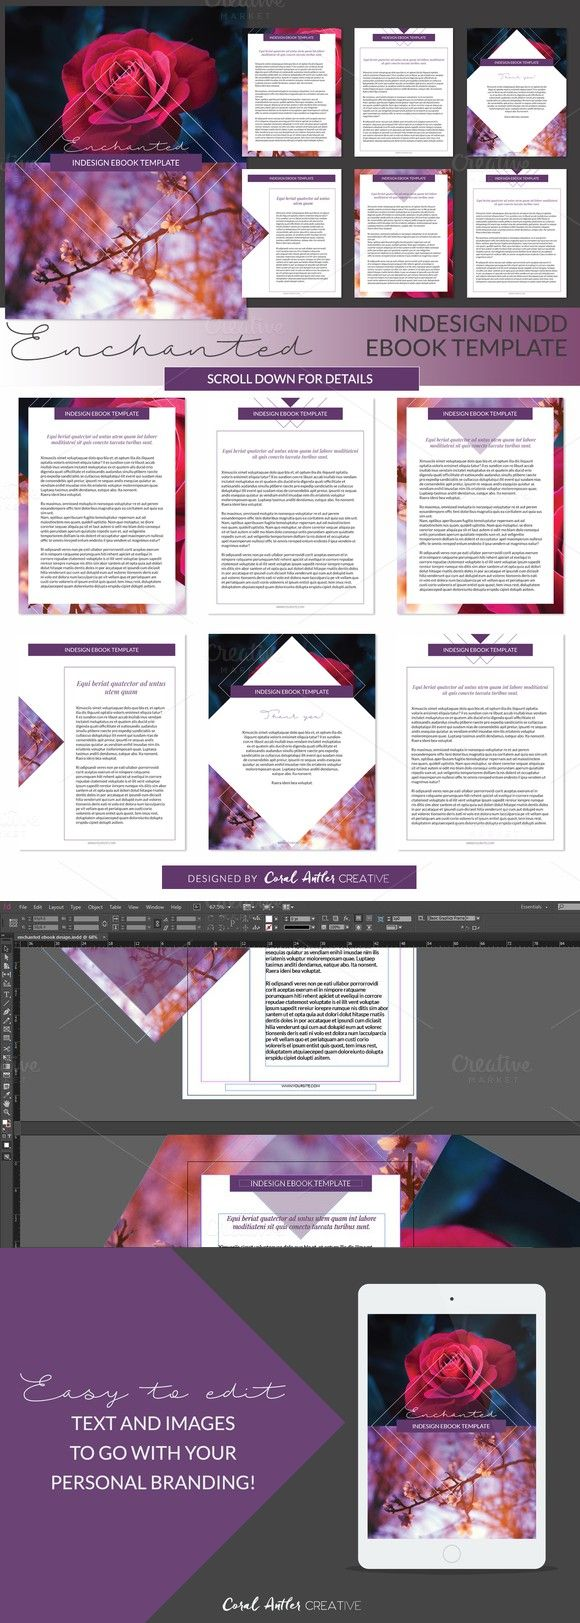 enchanted indesign ebook template | presentation templates, adobe, Powerpoint templates